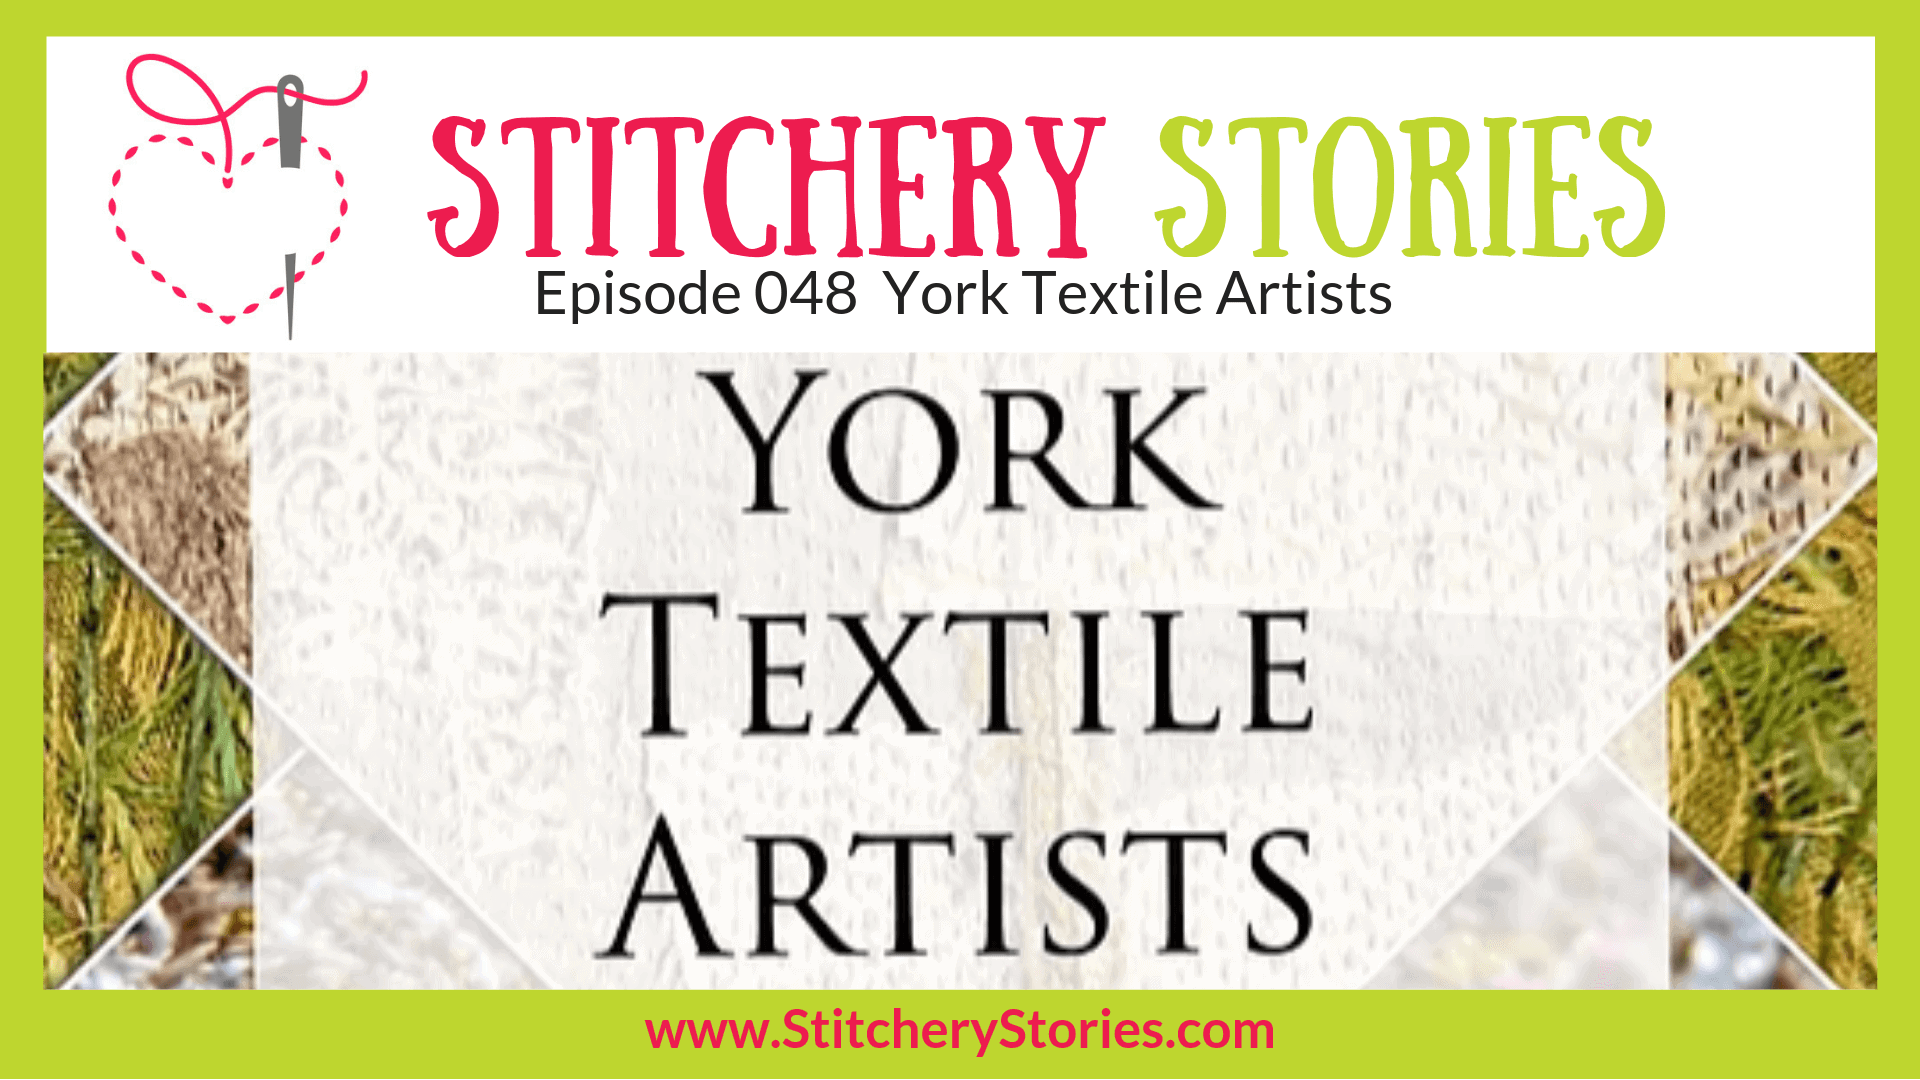 York Textile Artists Stitchery Stories Textile Art Podcast Wide Art